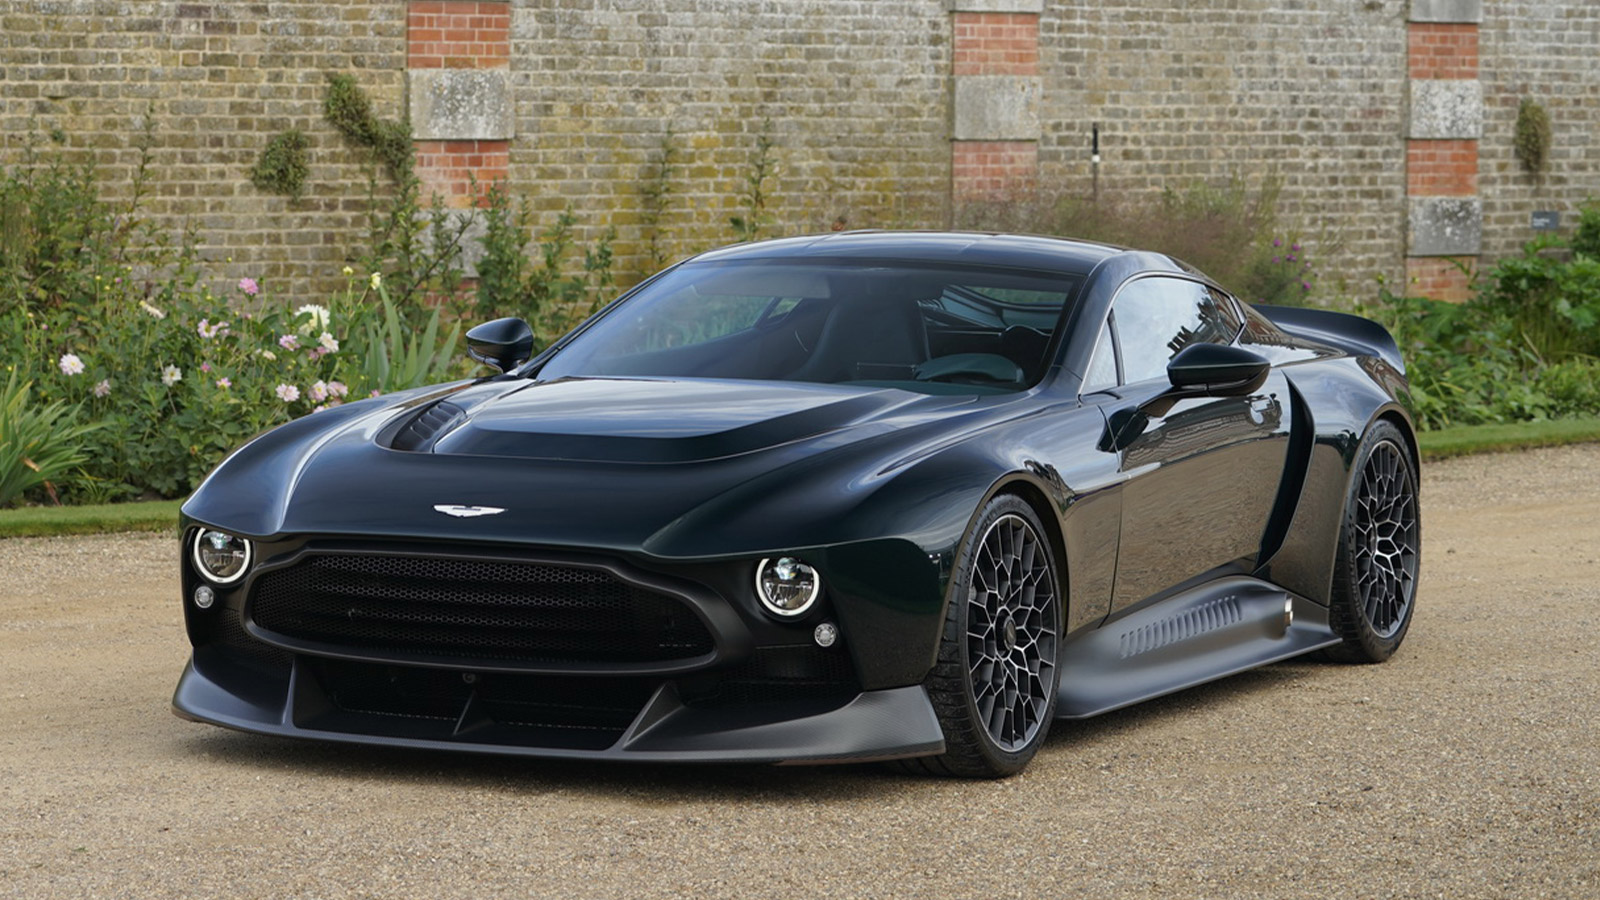 Aston Martin S Q Division Unveils A 1970s Inspired 836hp Supercar Called The Victor Imboldn